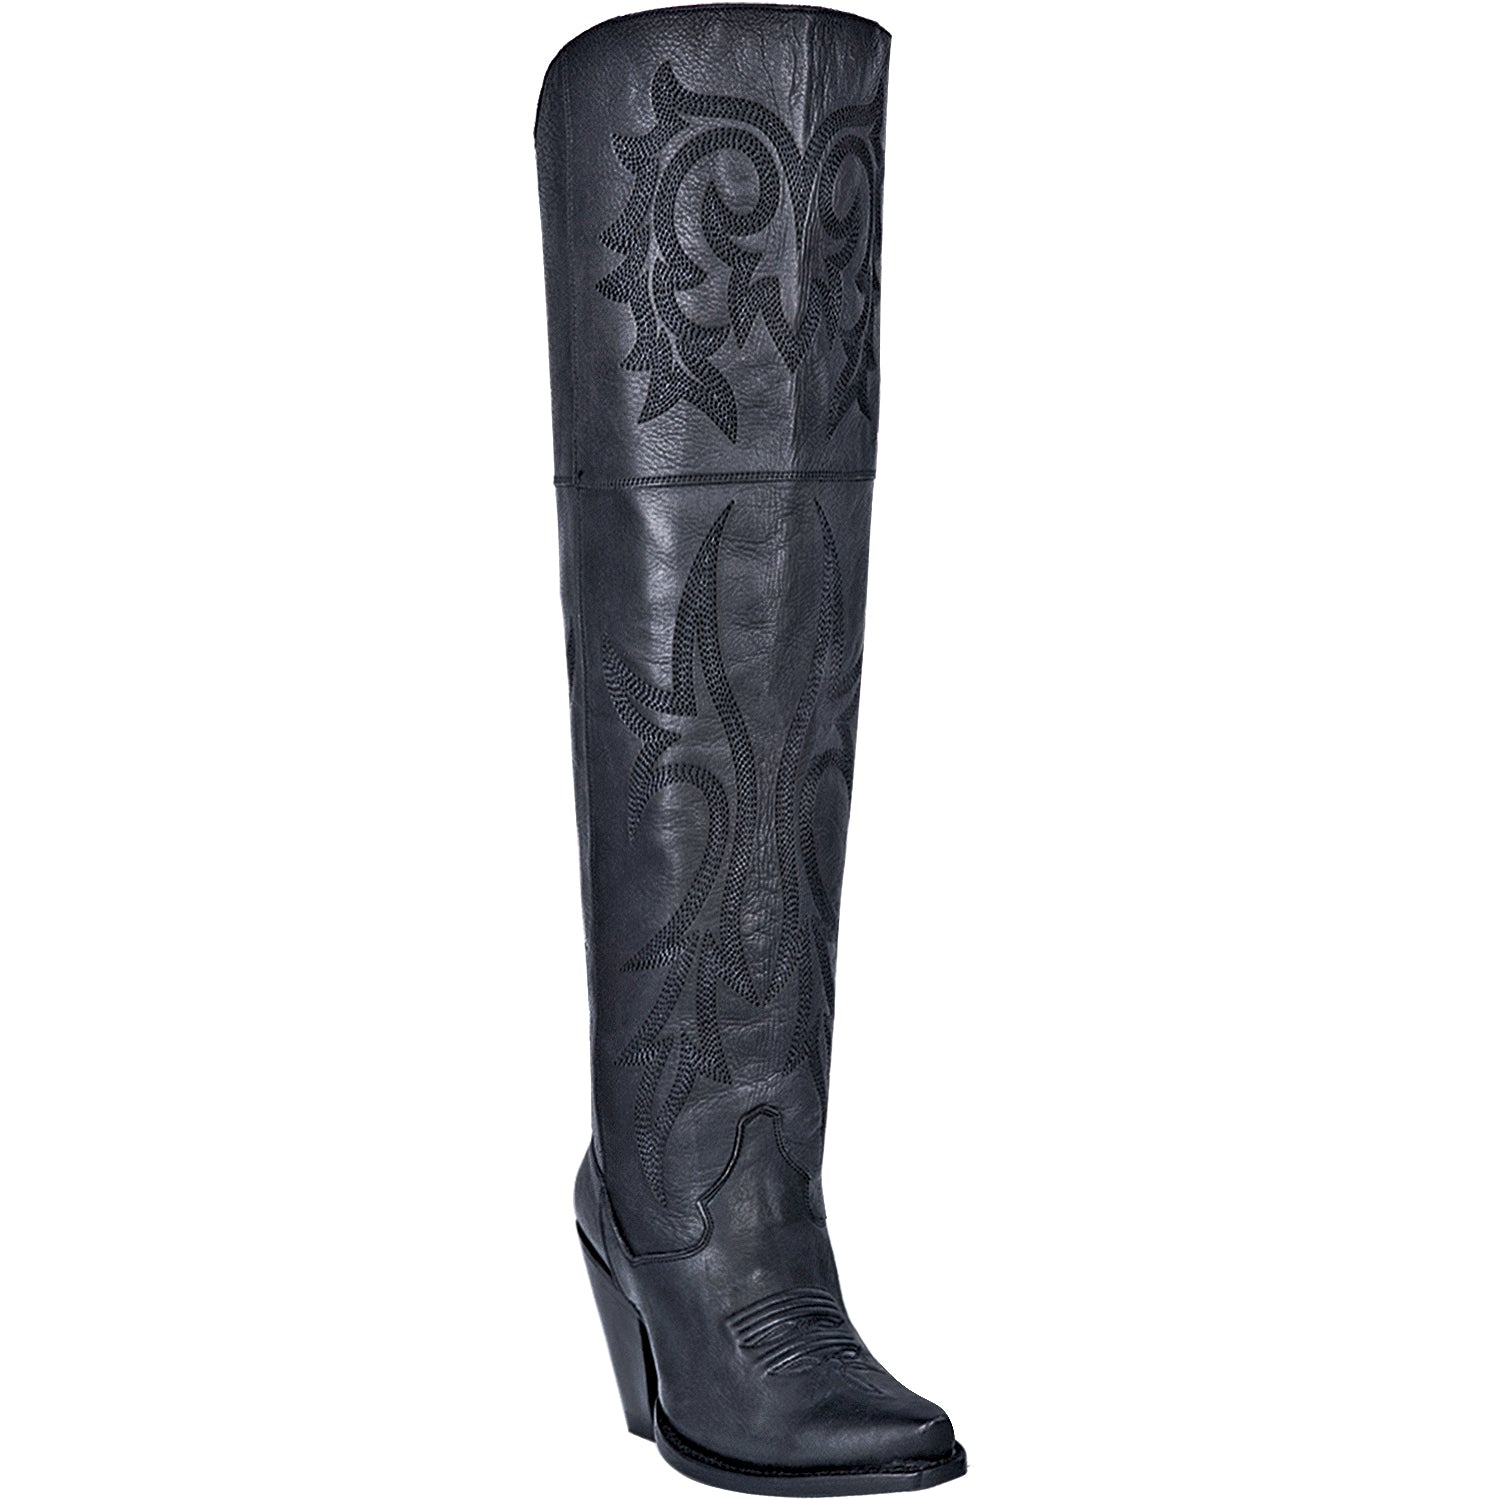 JILTED LEATHER BOOT 13239864229930